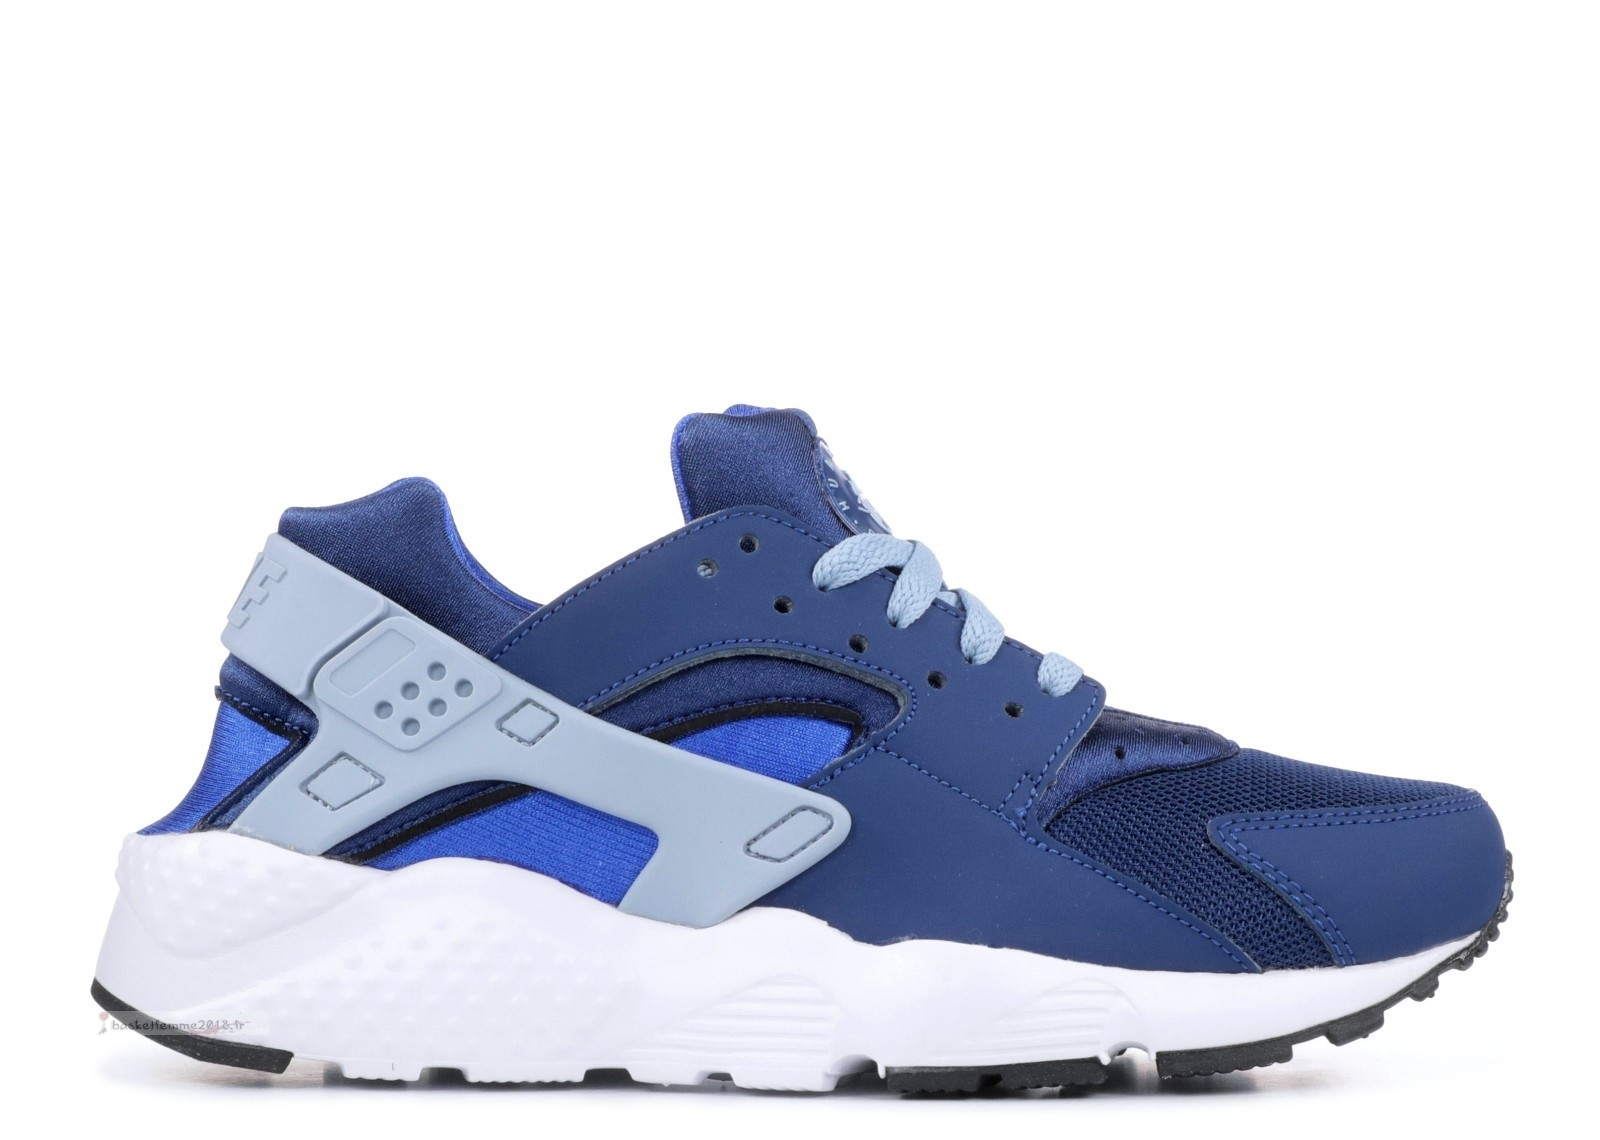 Nike Air Huarache Run Gs Marine (654275-406) Chaussure de Basket